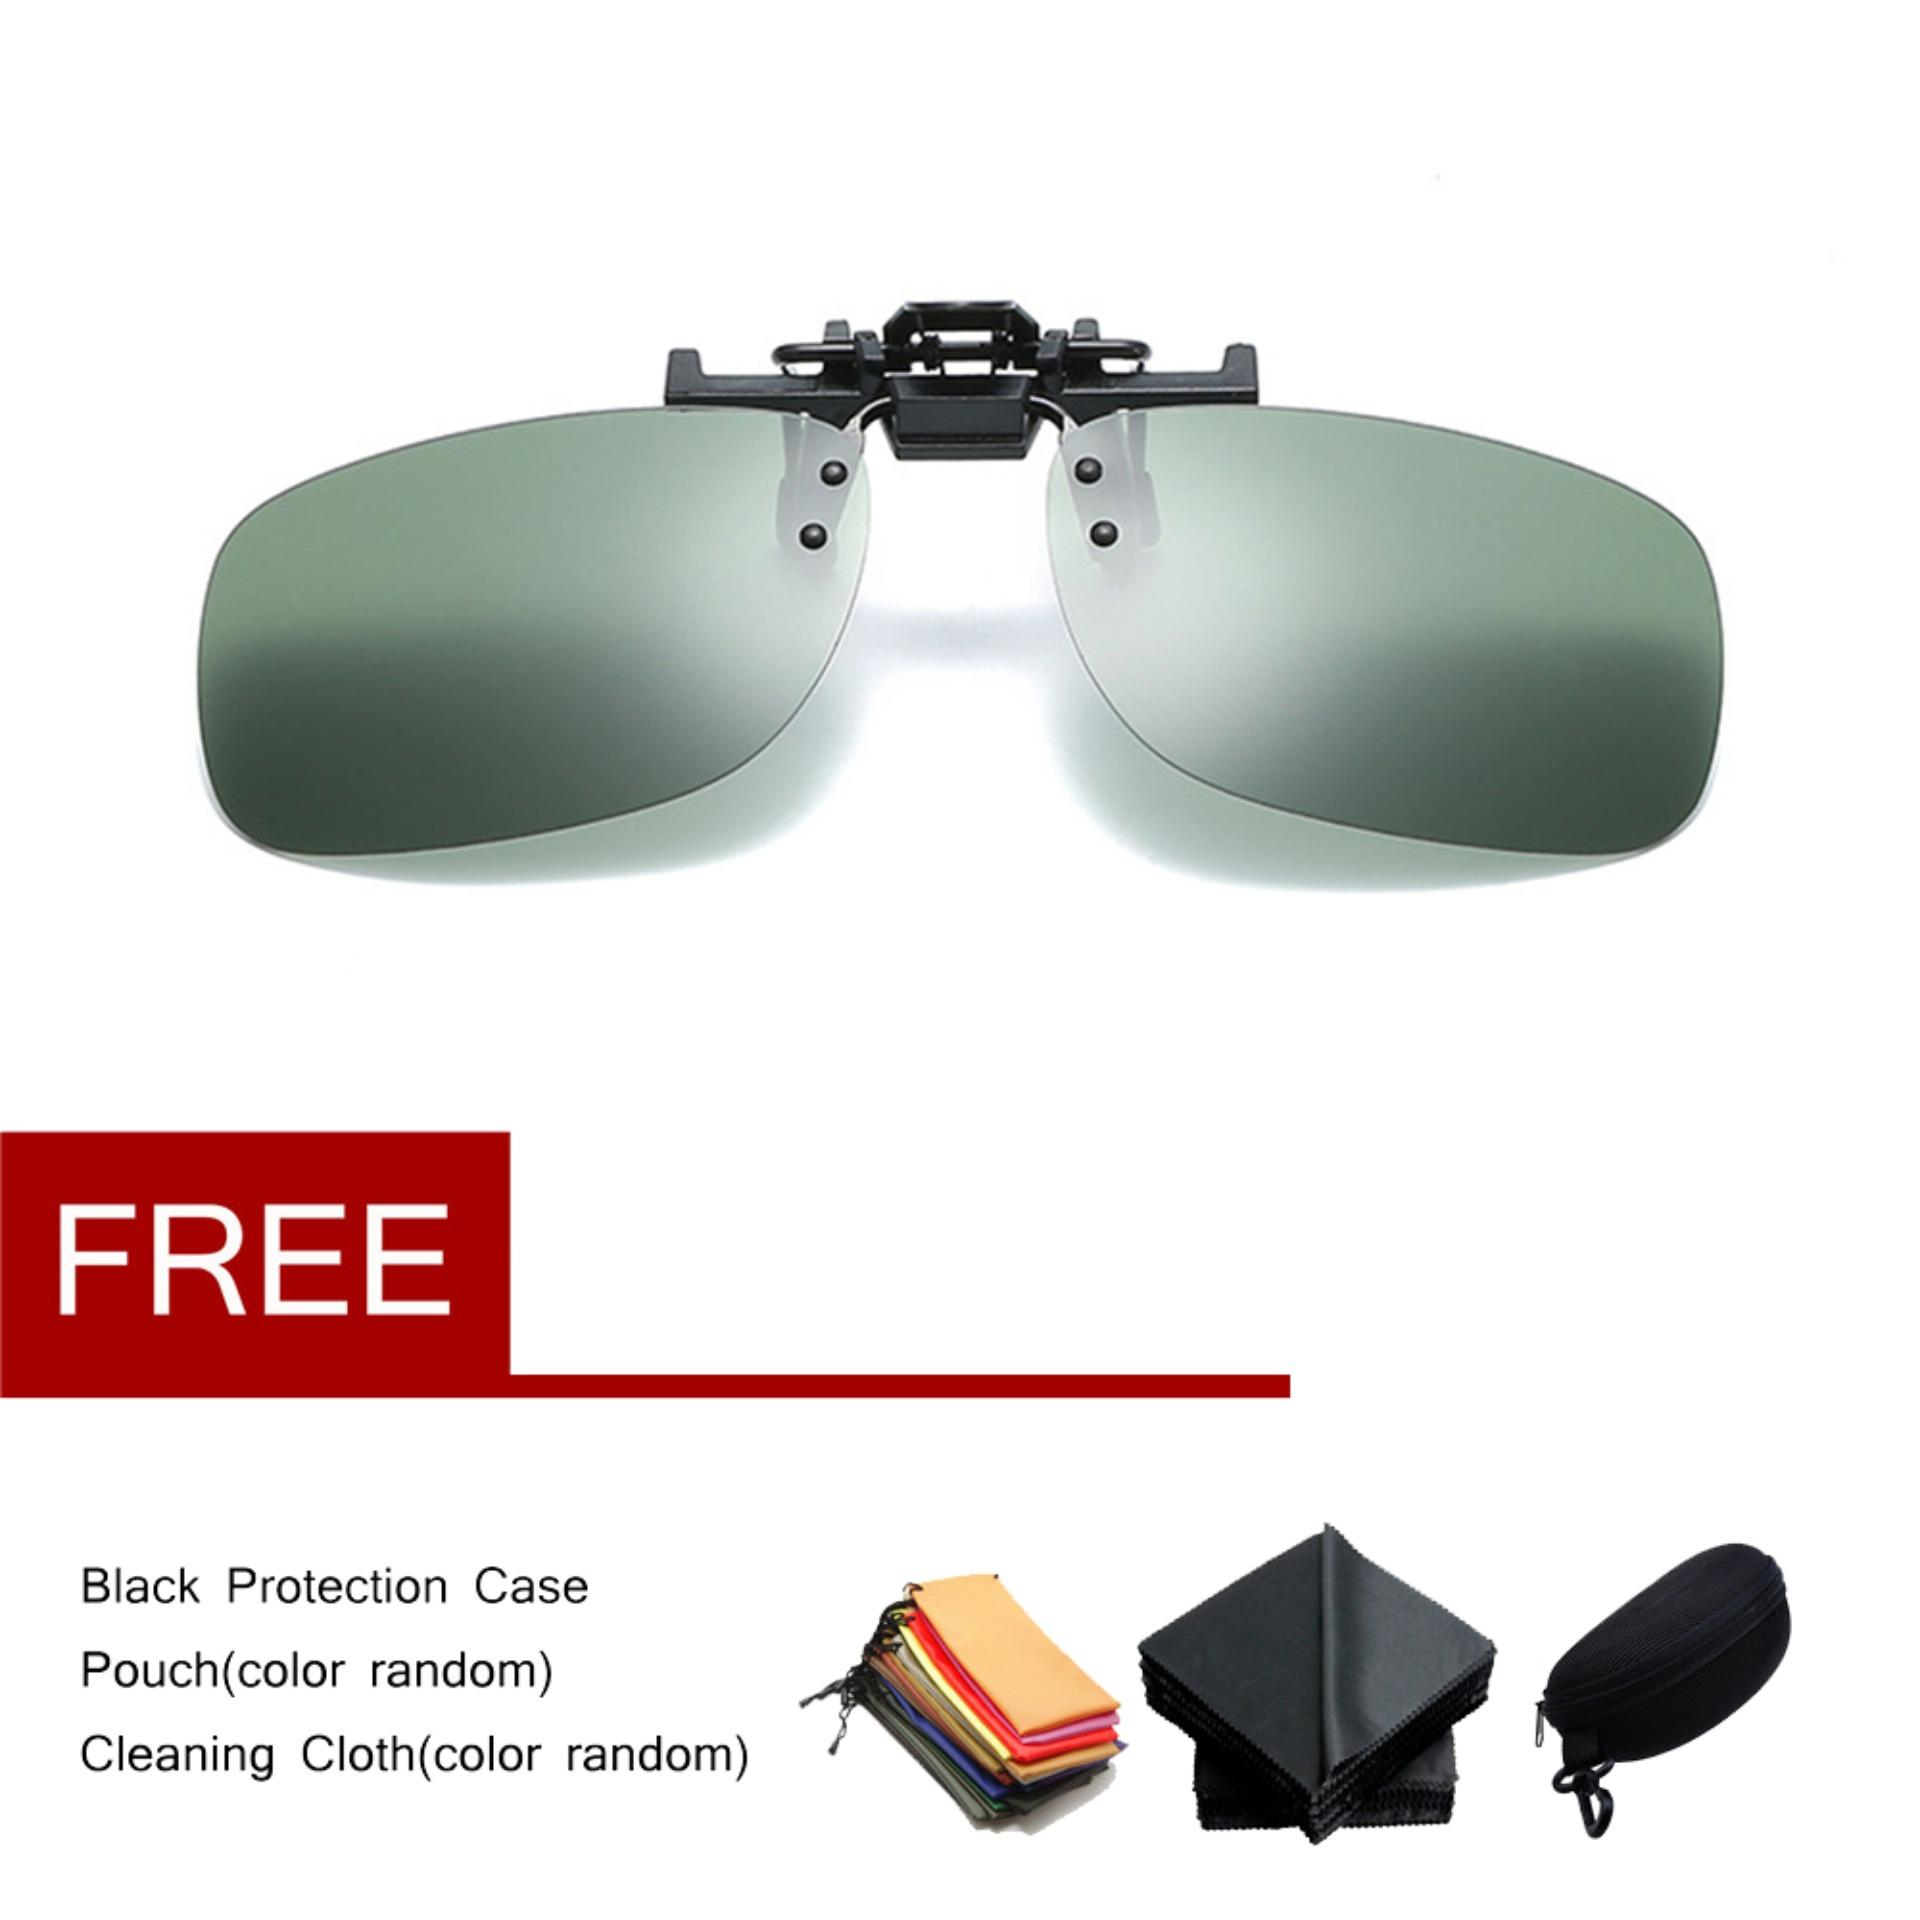 2eaccf6cff1 Hot Sale Fashion Polarized Lens UV400 Clip on Sunglasses Driving Glasses  Day Night Vision